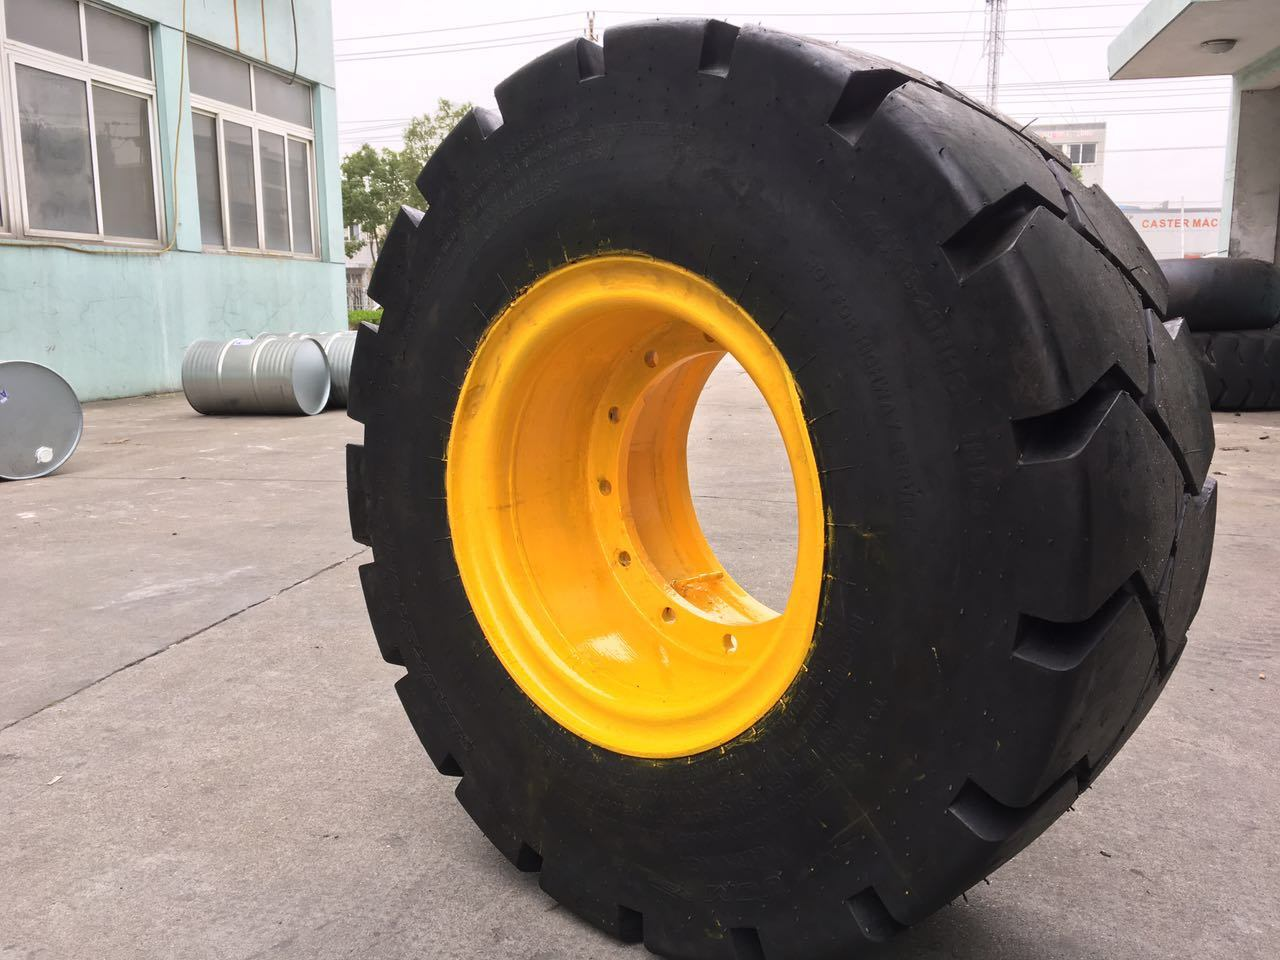 90-16 E3/L3 OTR Tires for Heavy Dump Trucks